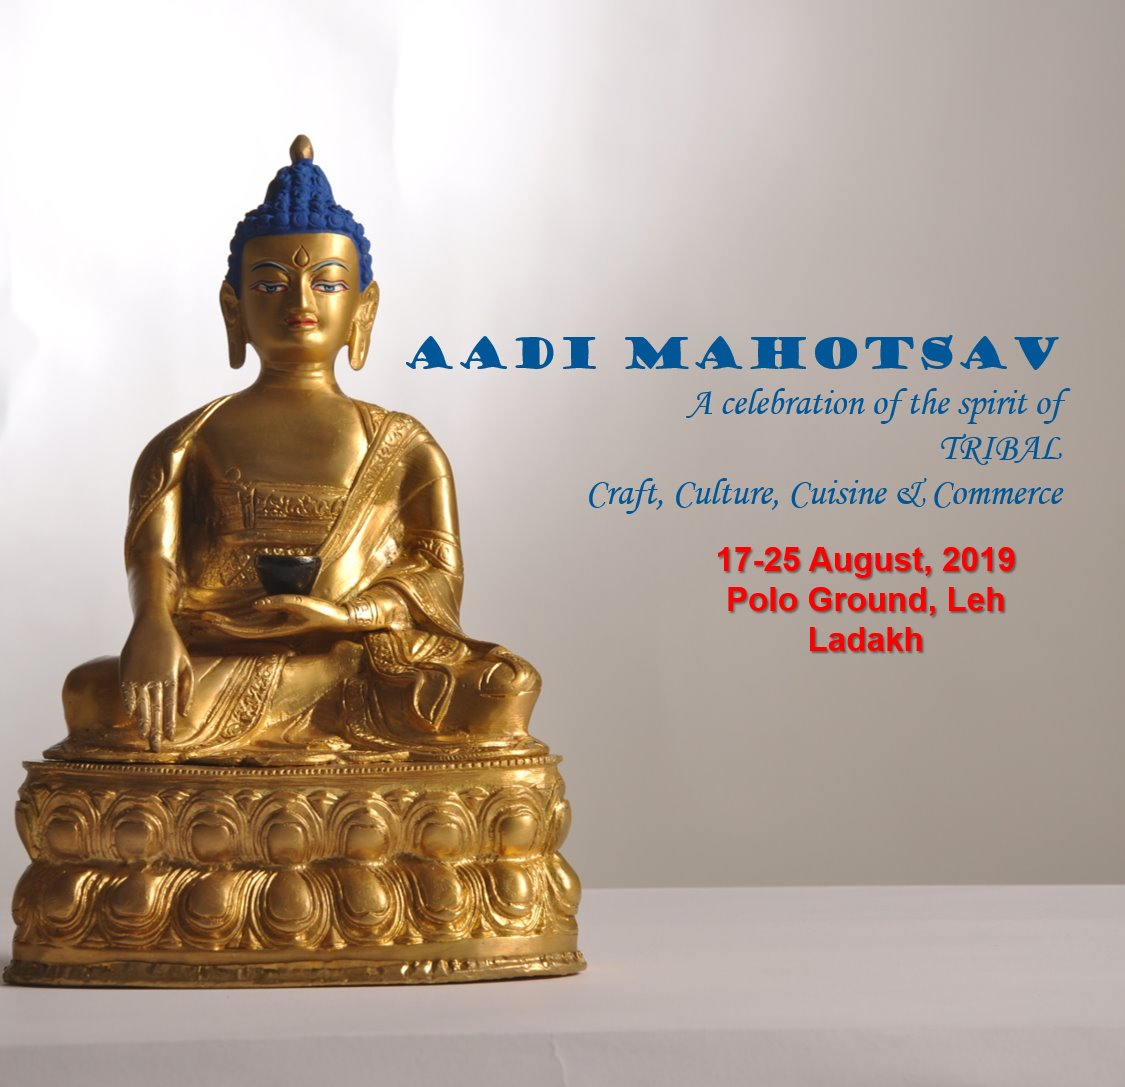 """Tribes India """"Aadi Mahotsav"""" a National Tribal Festival is being organized in #Leh from 17-25 Aug, 19 by the @TribalAffairsIn & #TRIFED to celebrate, cherish and promote the spirit of tribal craft, culture, cuisine and commerce. Welcome !! #aadimahotsav #GoTribalWithTribesIndia"""